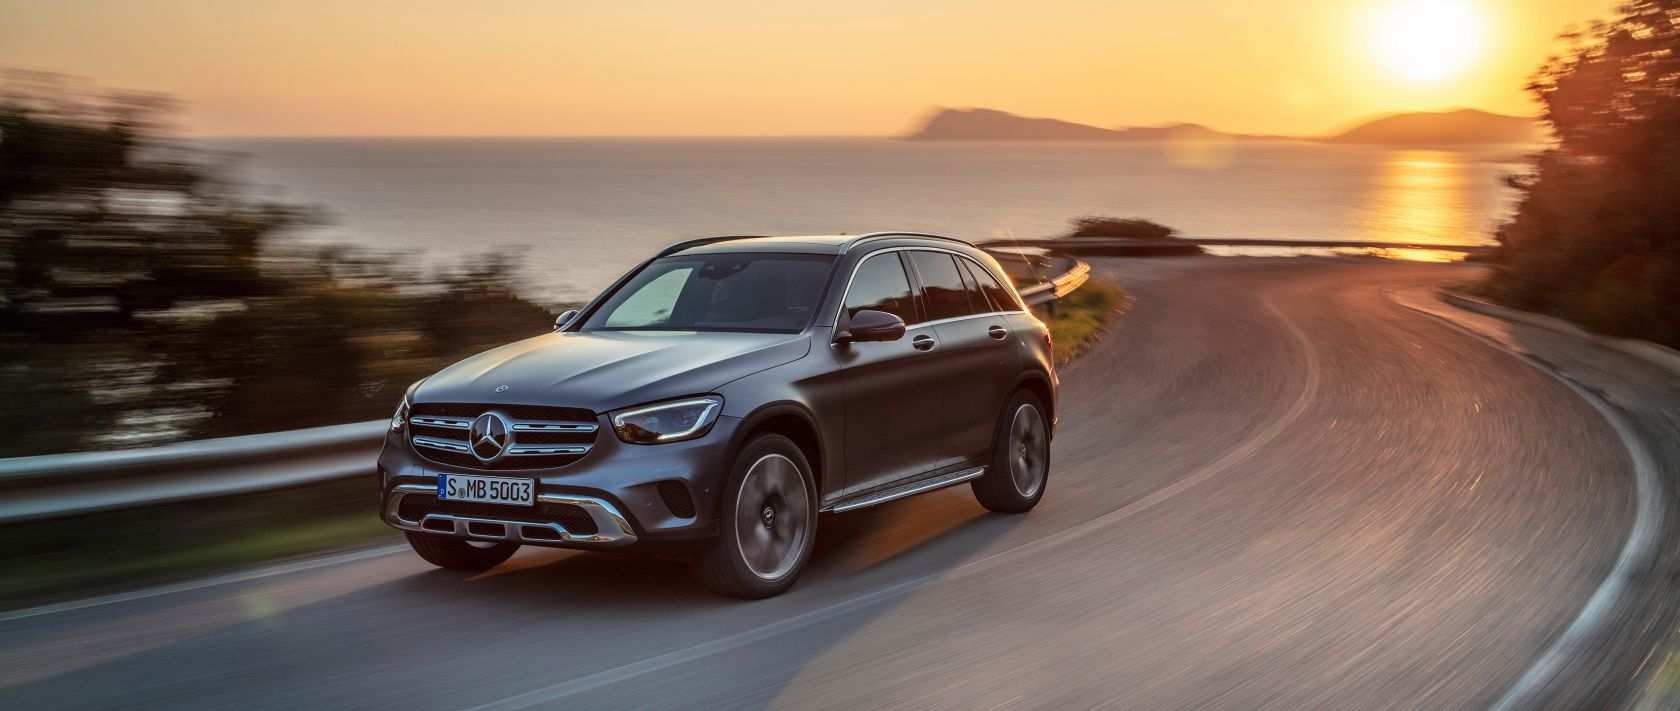 96 The Best 2019 Mercedes Glc Speed Test